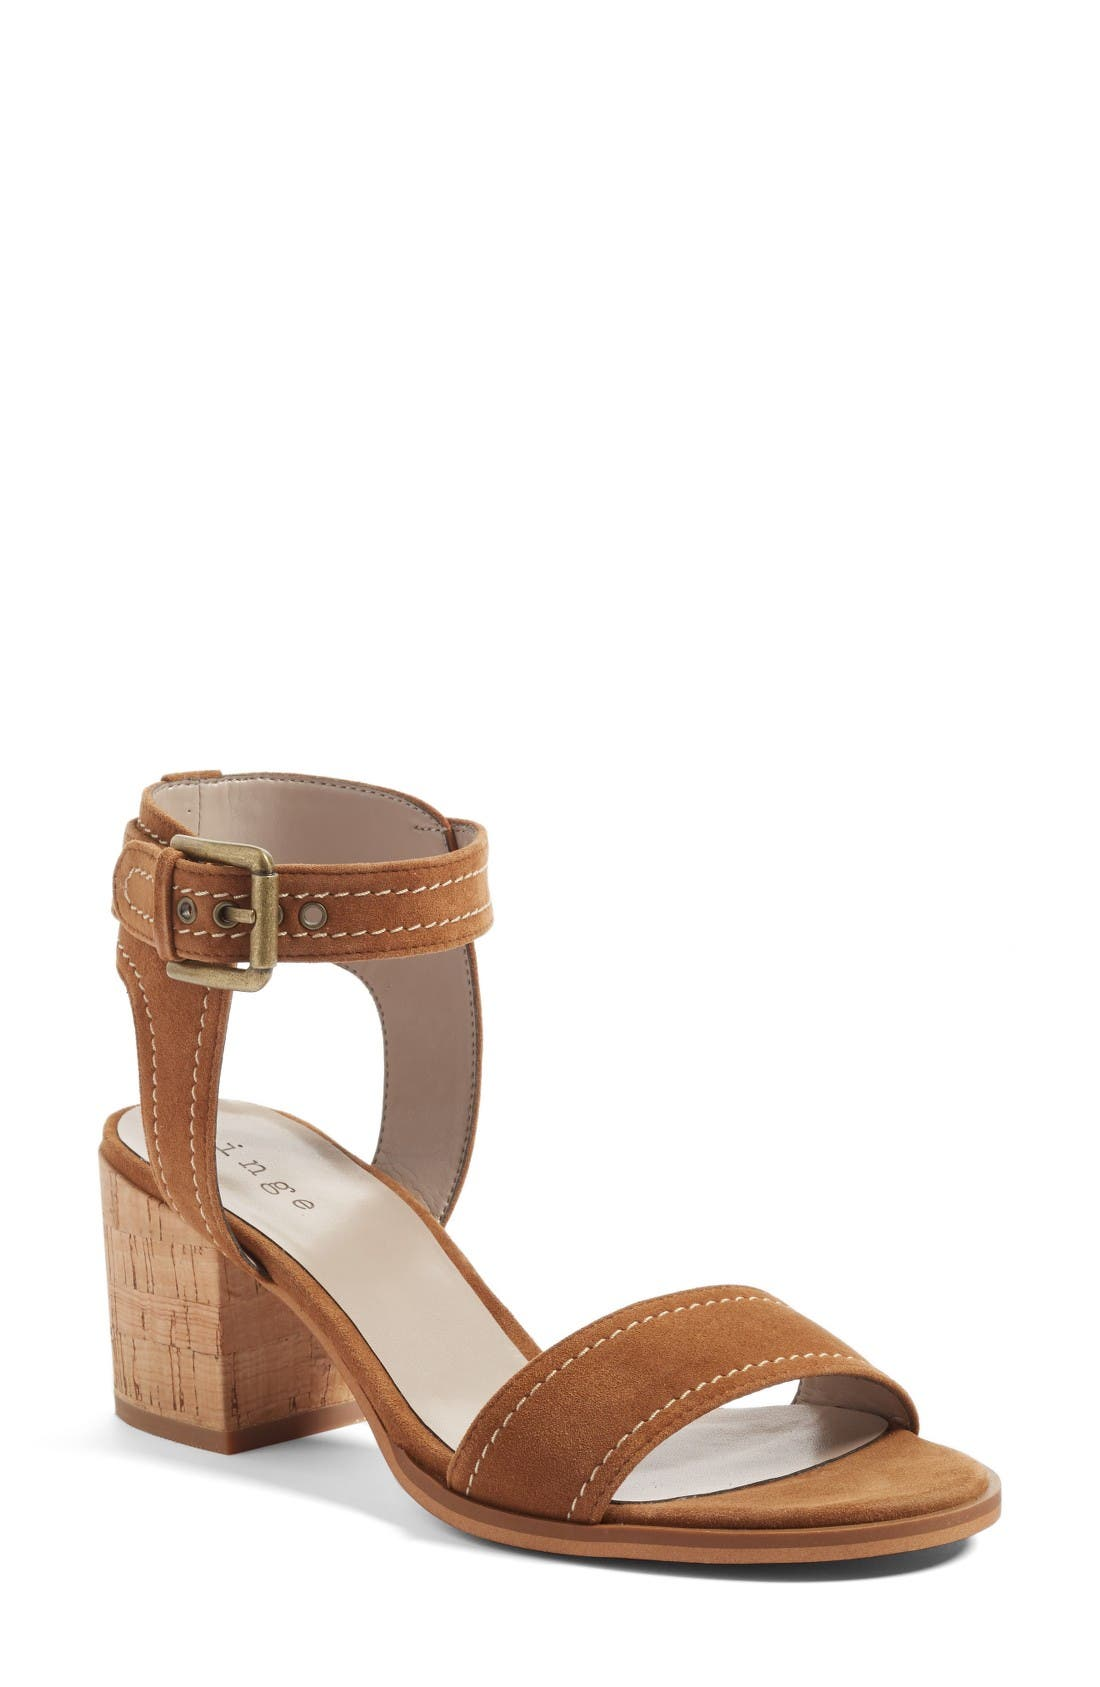 Dylan Block Heel Sandal,                             Main thumbnail 1, color,                             Brown Suede